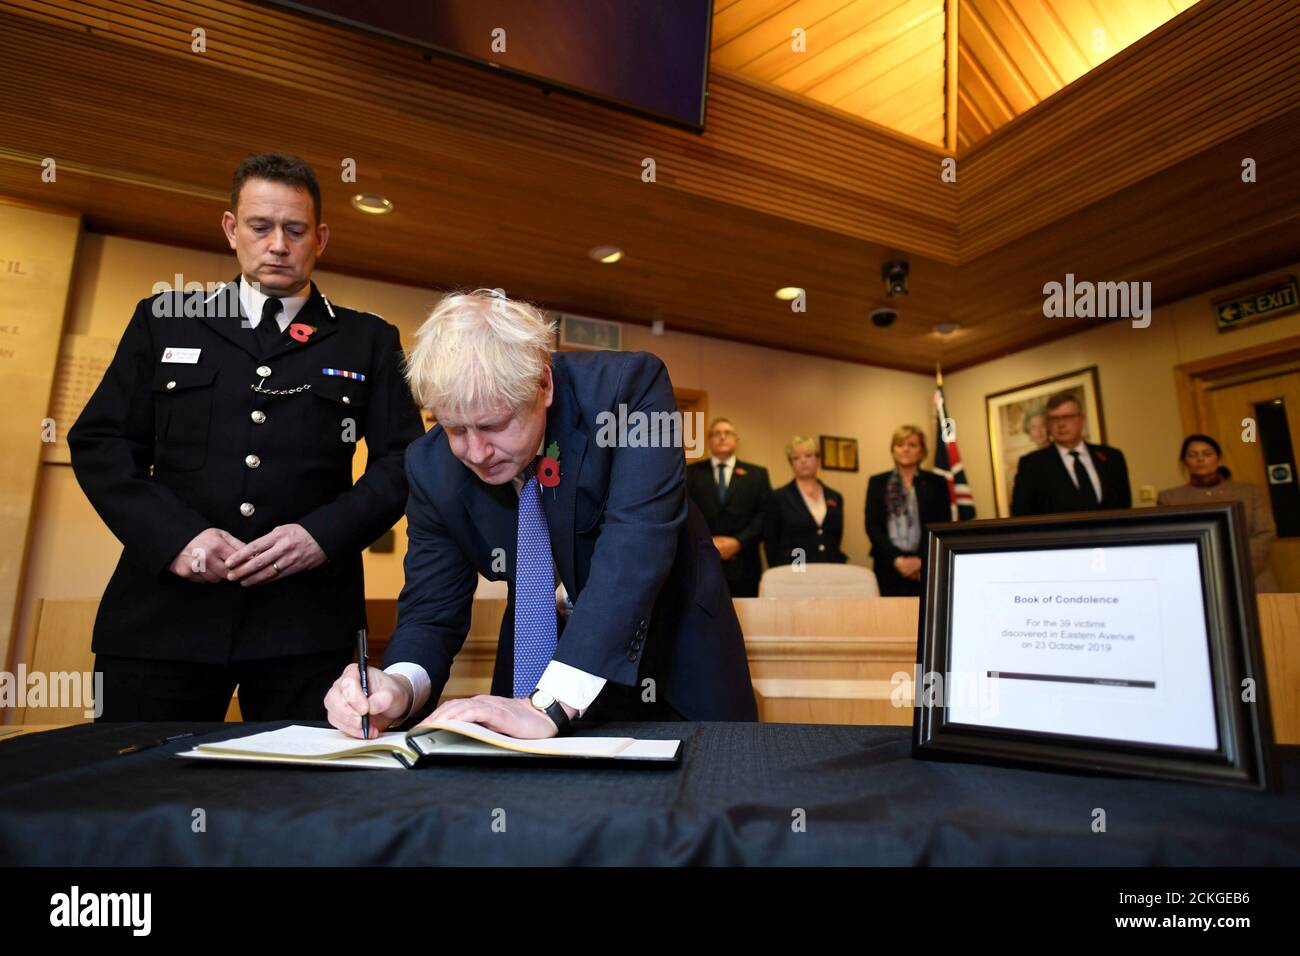 Britain's Prime Minister Boris Johnson signs a book of condolence during a visit to Thurrock Council Offices in Grays, Britain October 28, 2019. Stefan Rousseau/Pool via REUTERS     TPX IMAGES OF THE DAY Stock Photo